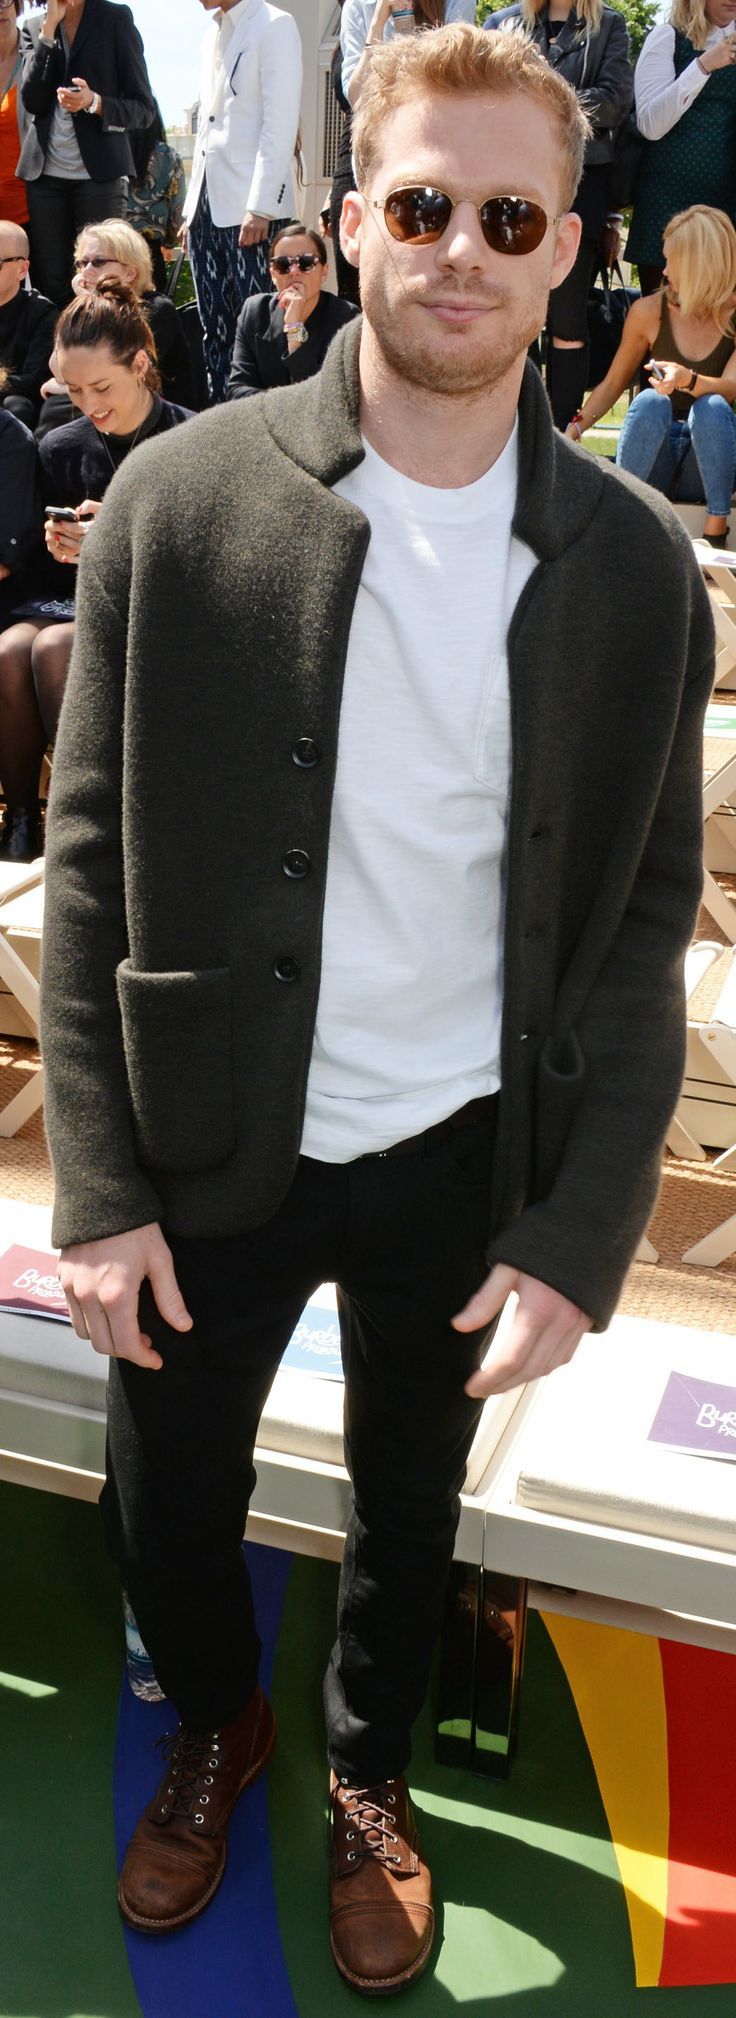 Australian actor Sam Reid wearing a knitted Burberry cashmere tailored jacket to attend the Burberry show in Kensington Gardens